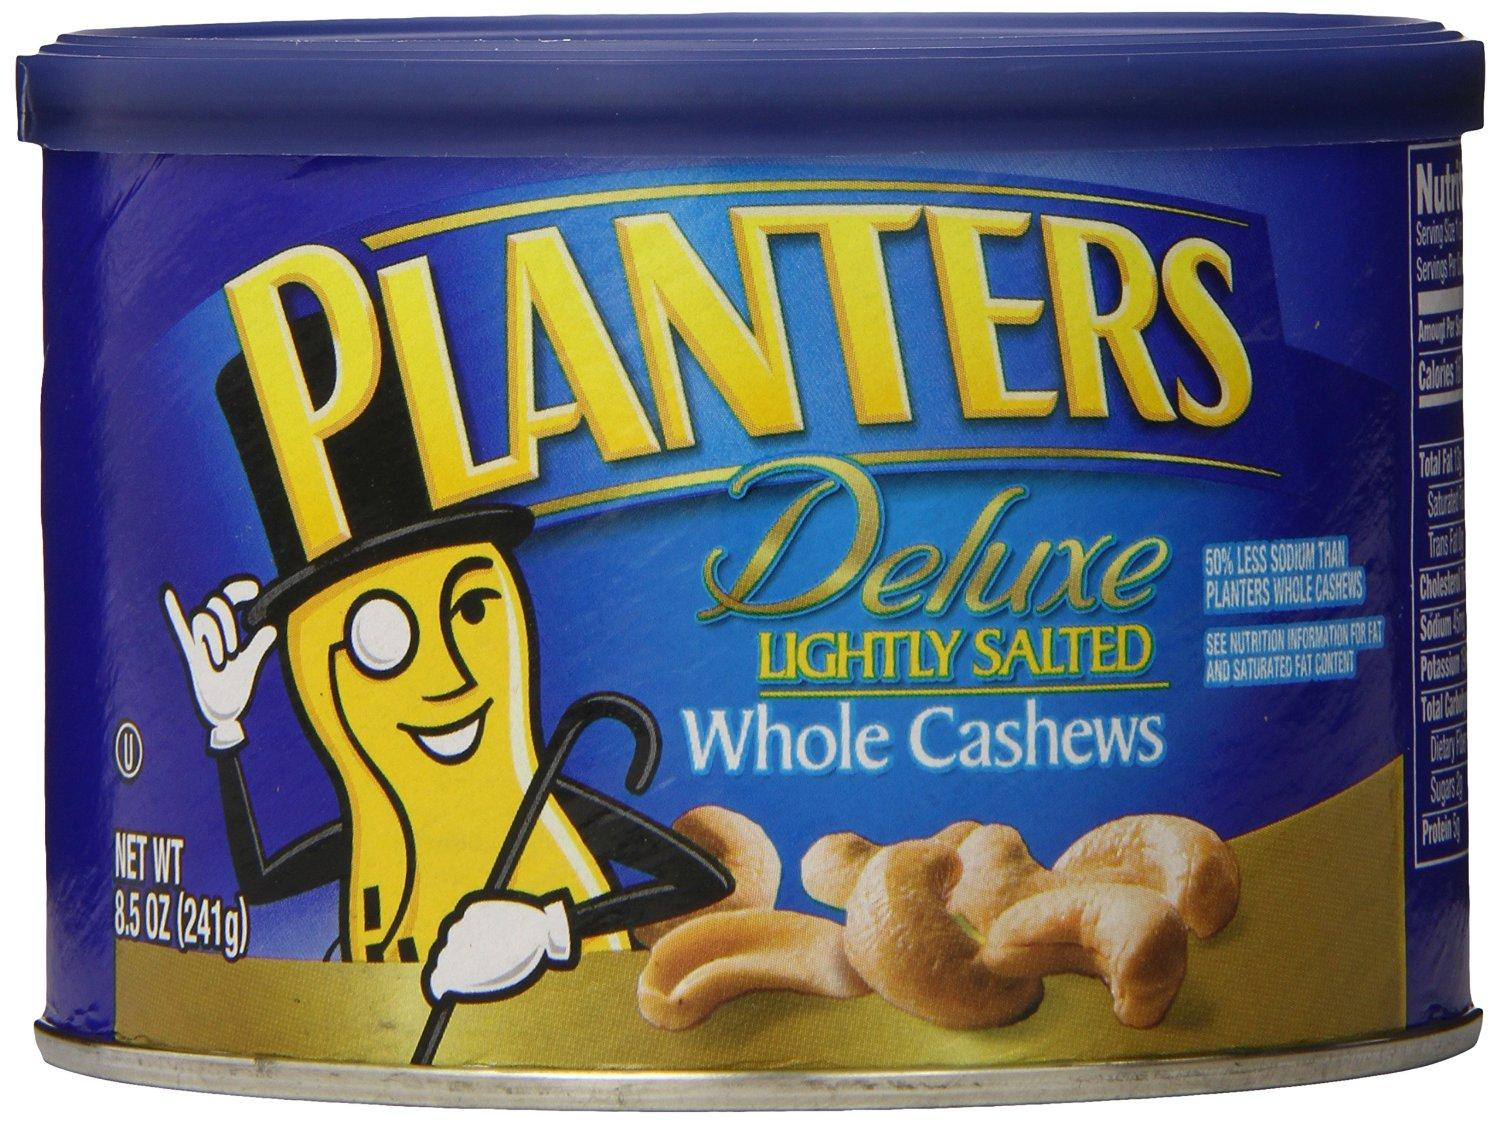 $8.93 Planters Cashew Whole Lightly Salted, 8.5-oz. (Count of 3)